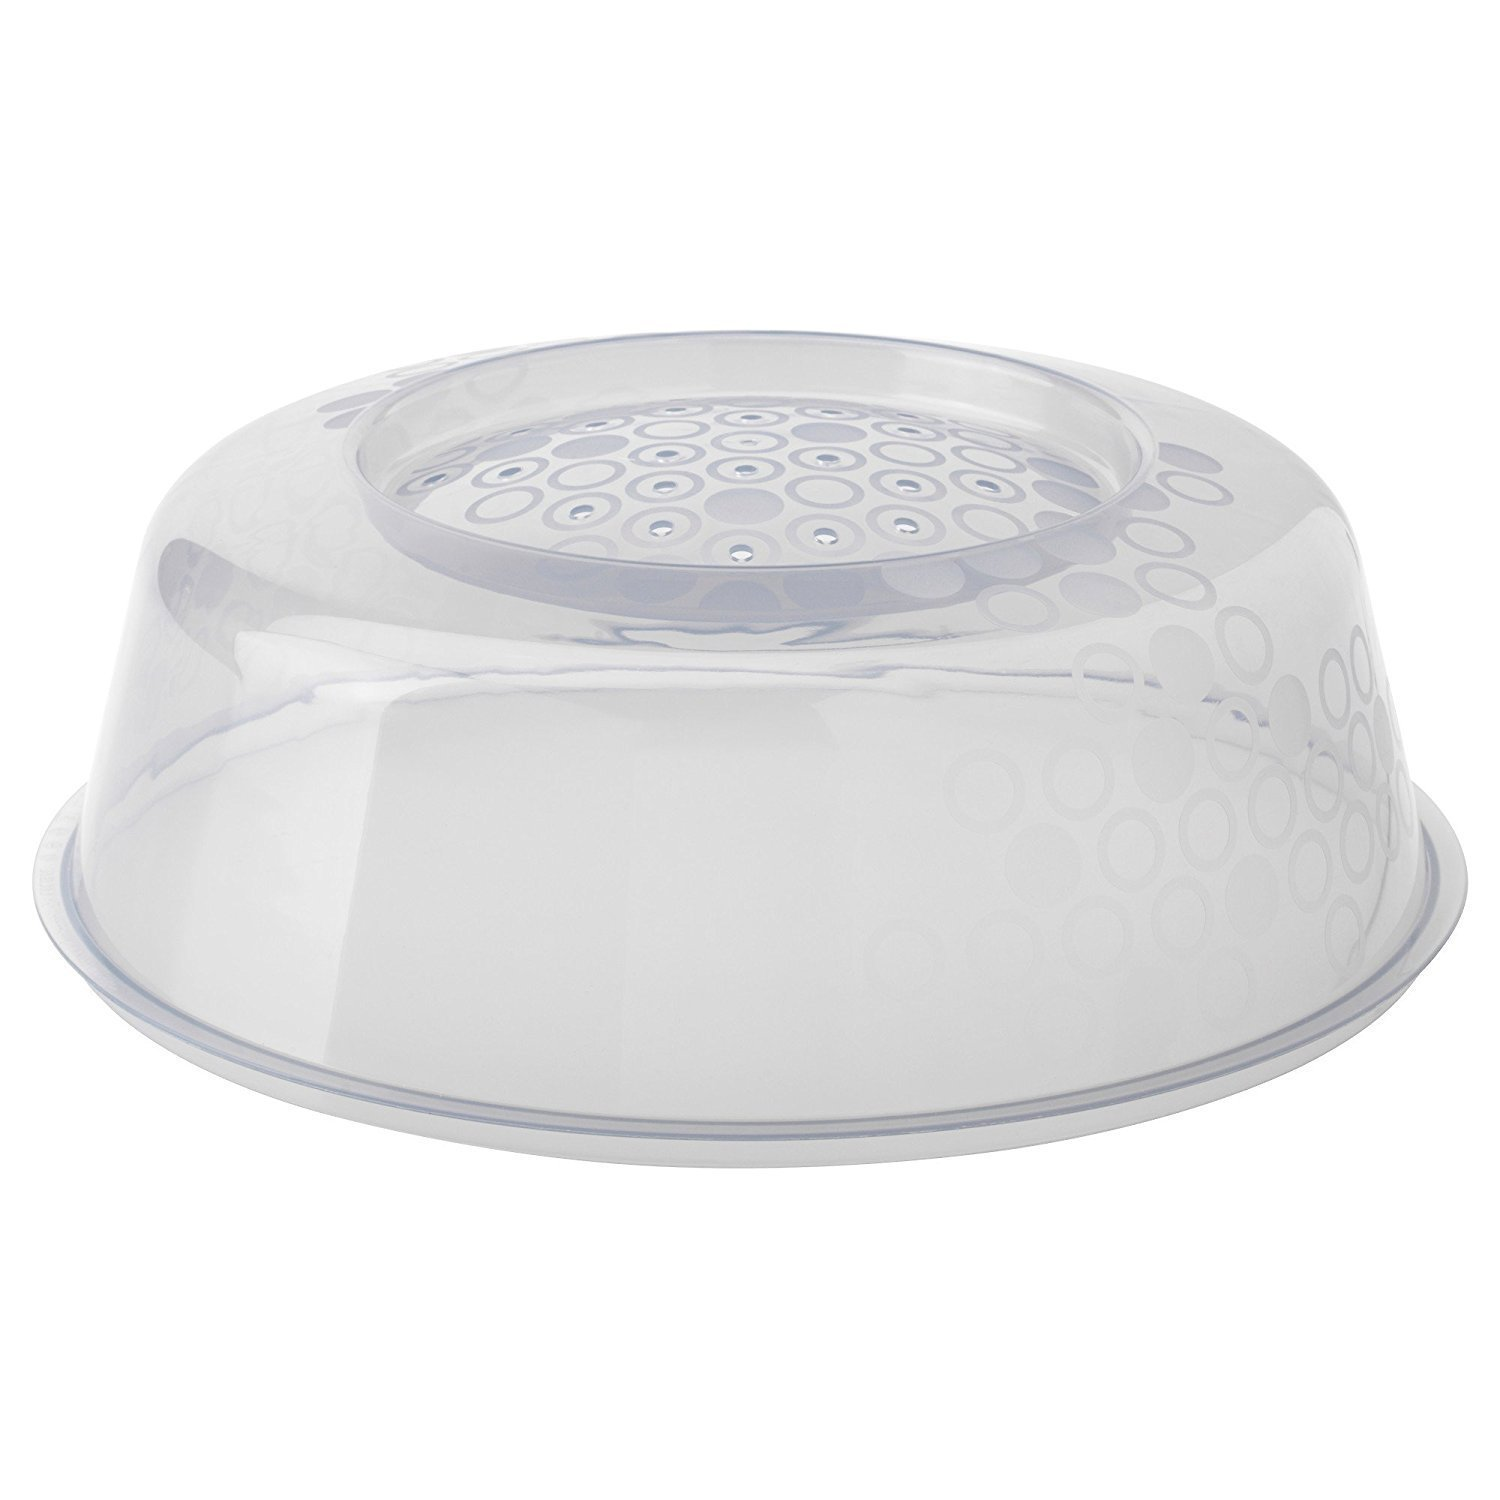 Ikea Microwave Lid Gray Blue - Pack of 3